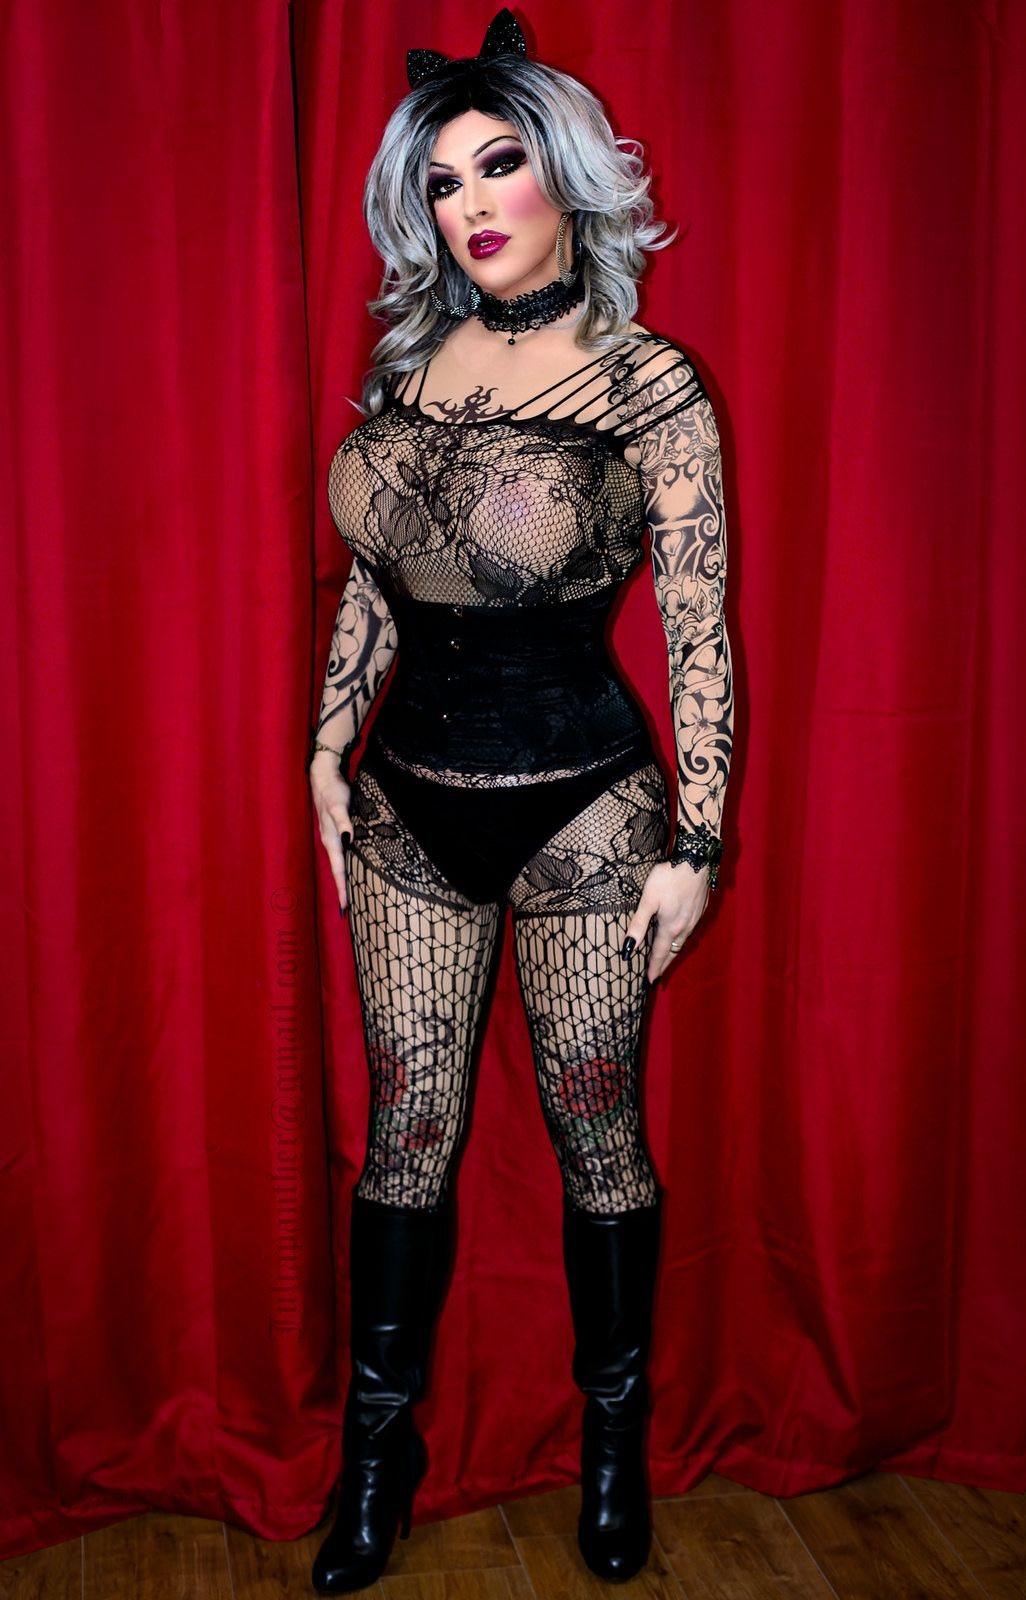 9362e4298476 Fishnet and leather boots drag and the queens we like pinterest jpg  1026x1600 Drag fishnet